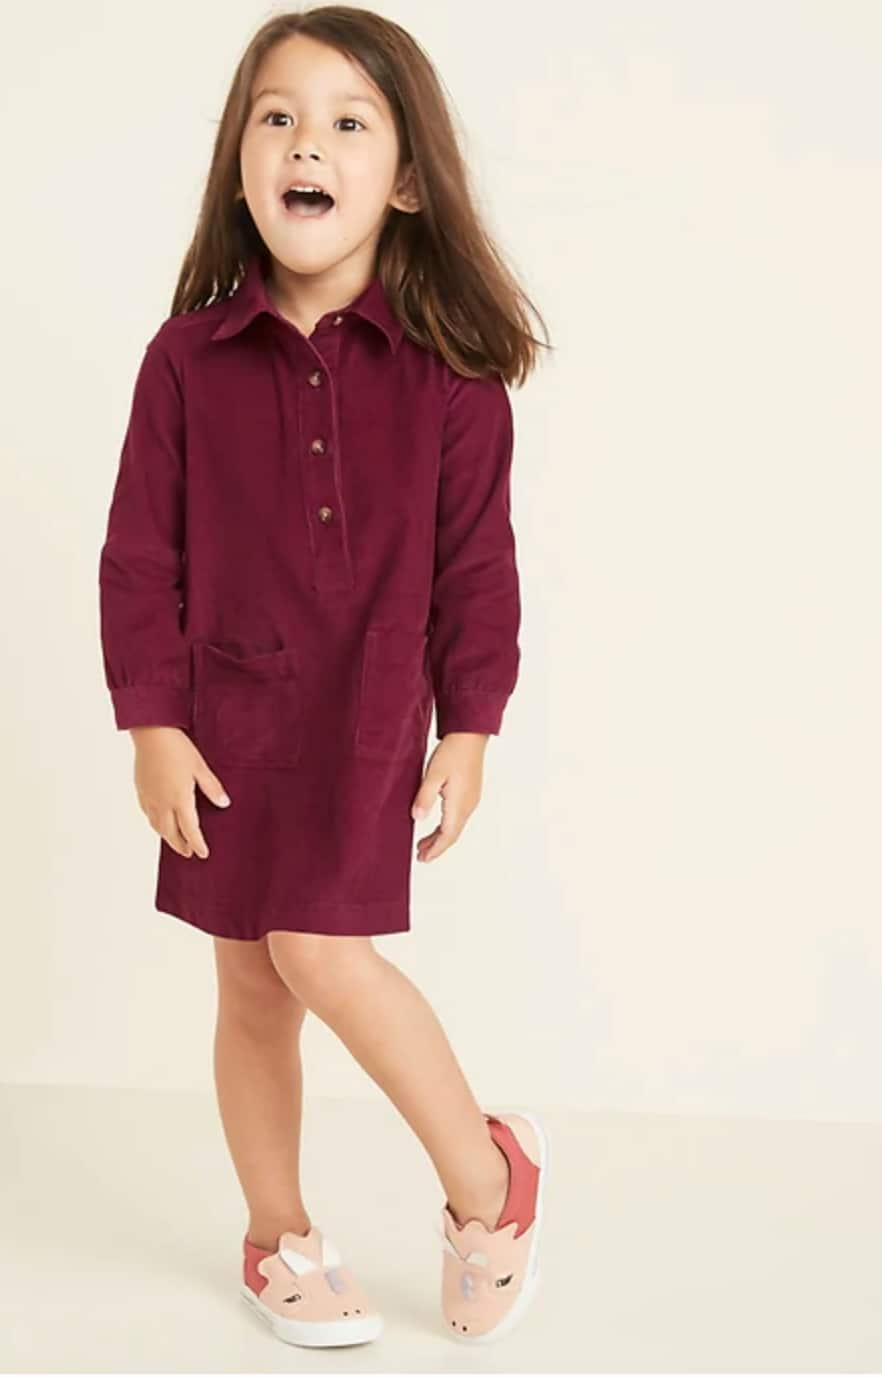 Old Navy Extra 40% Off Kids' & Toddlers Clearance: Toddler Shirts $4.80, Dresses